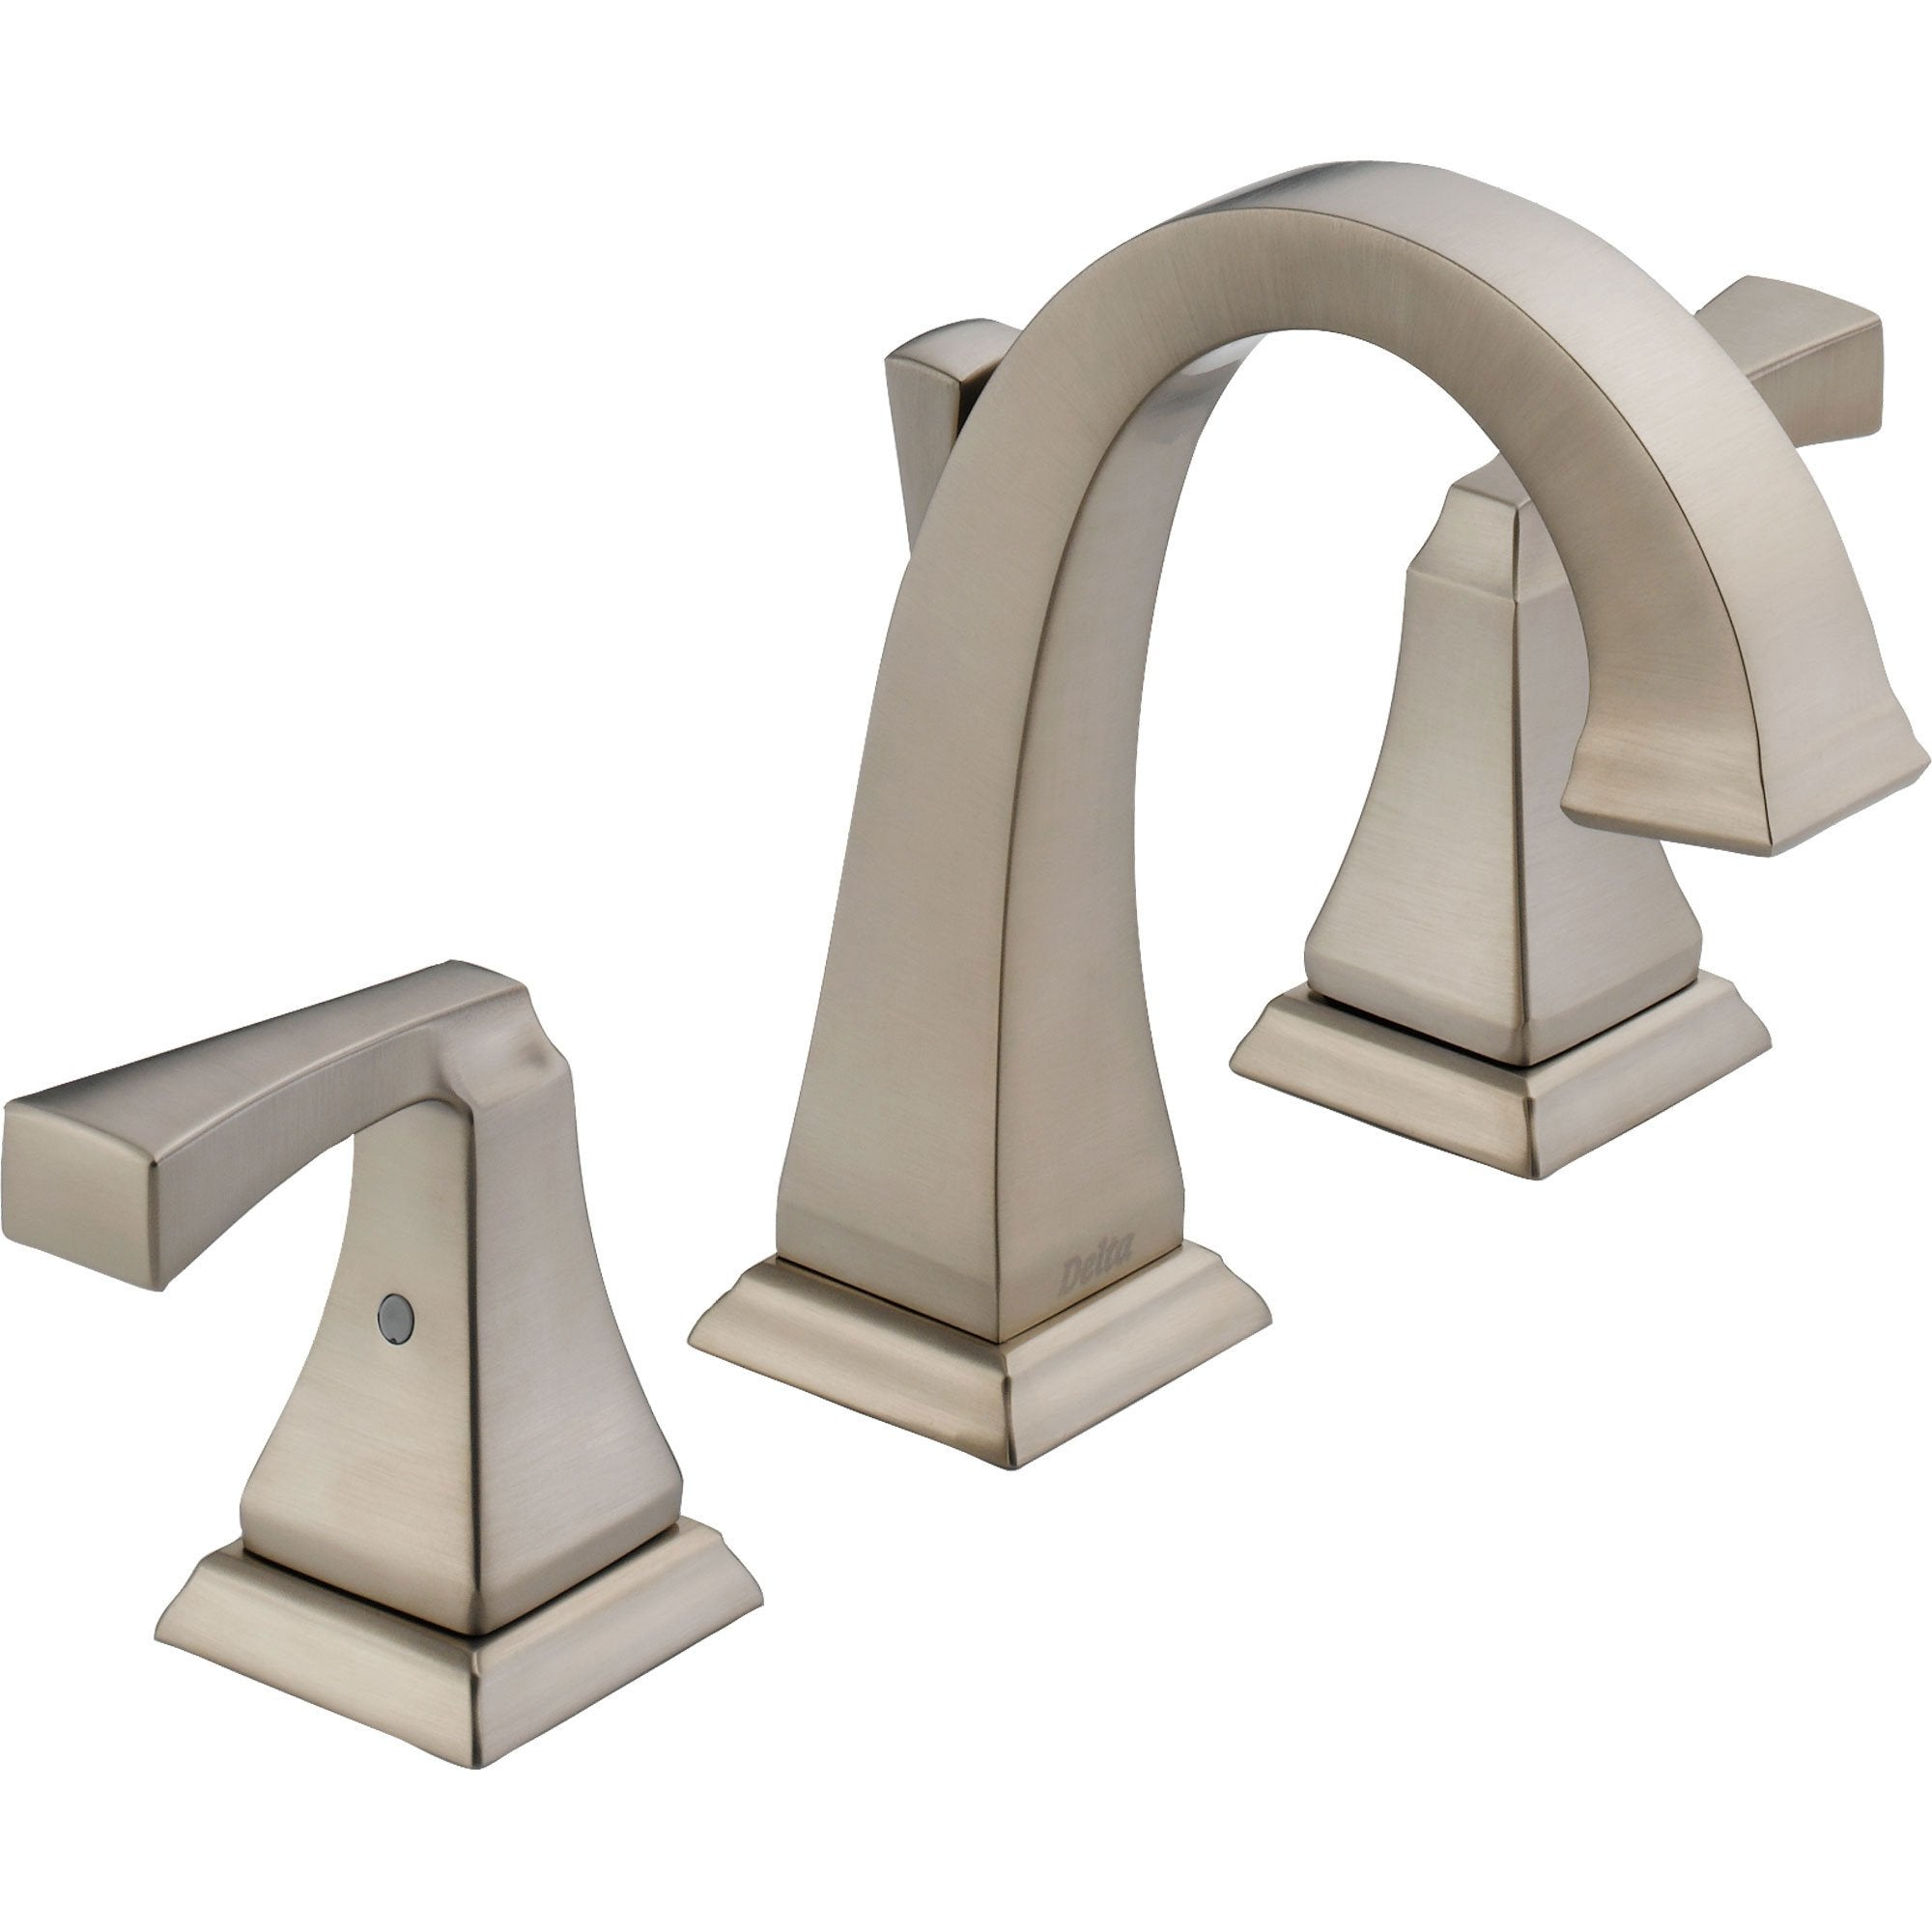 Delta Dryden Modern High Arc Stainless Finish Widespread Bathroom Faucet 474215